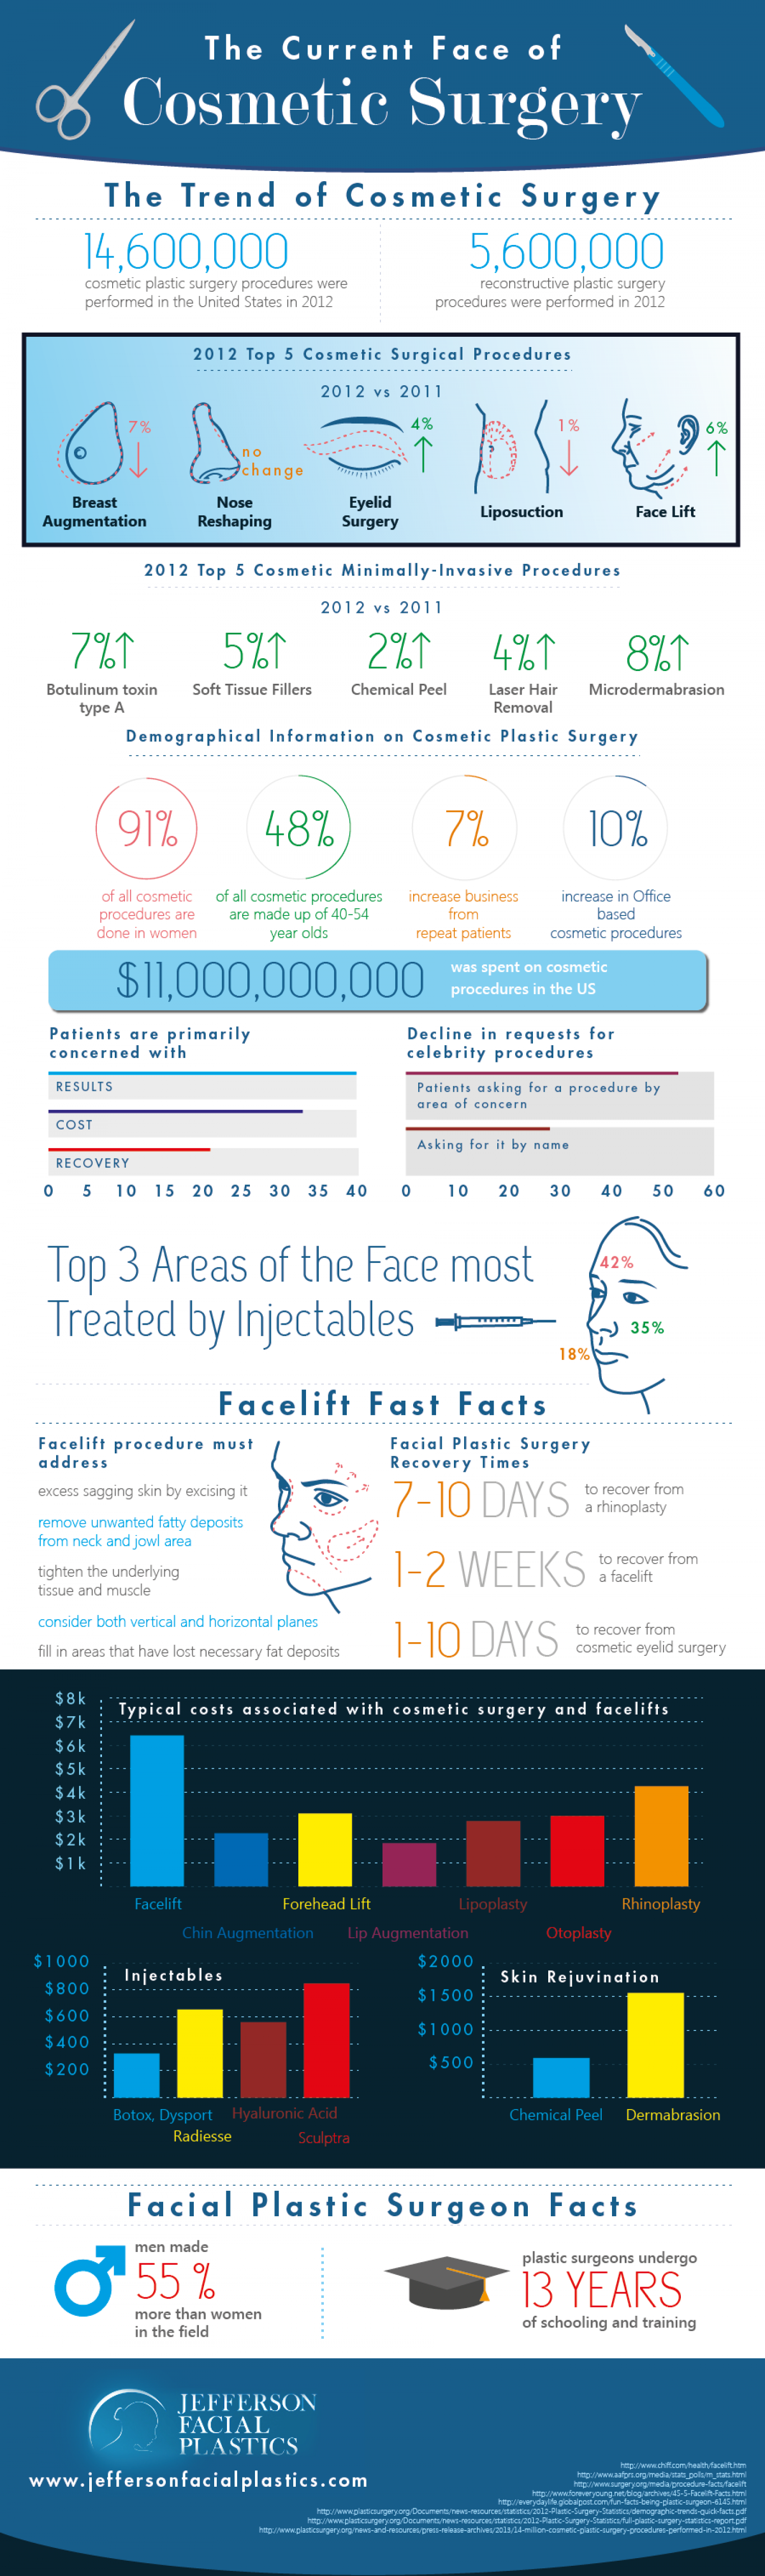 The Current Face of Cosmetic Surgery Infographic